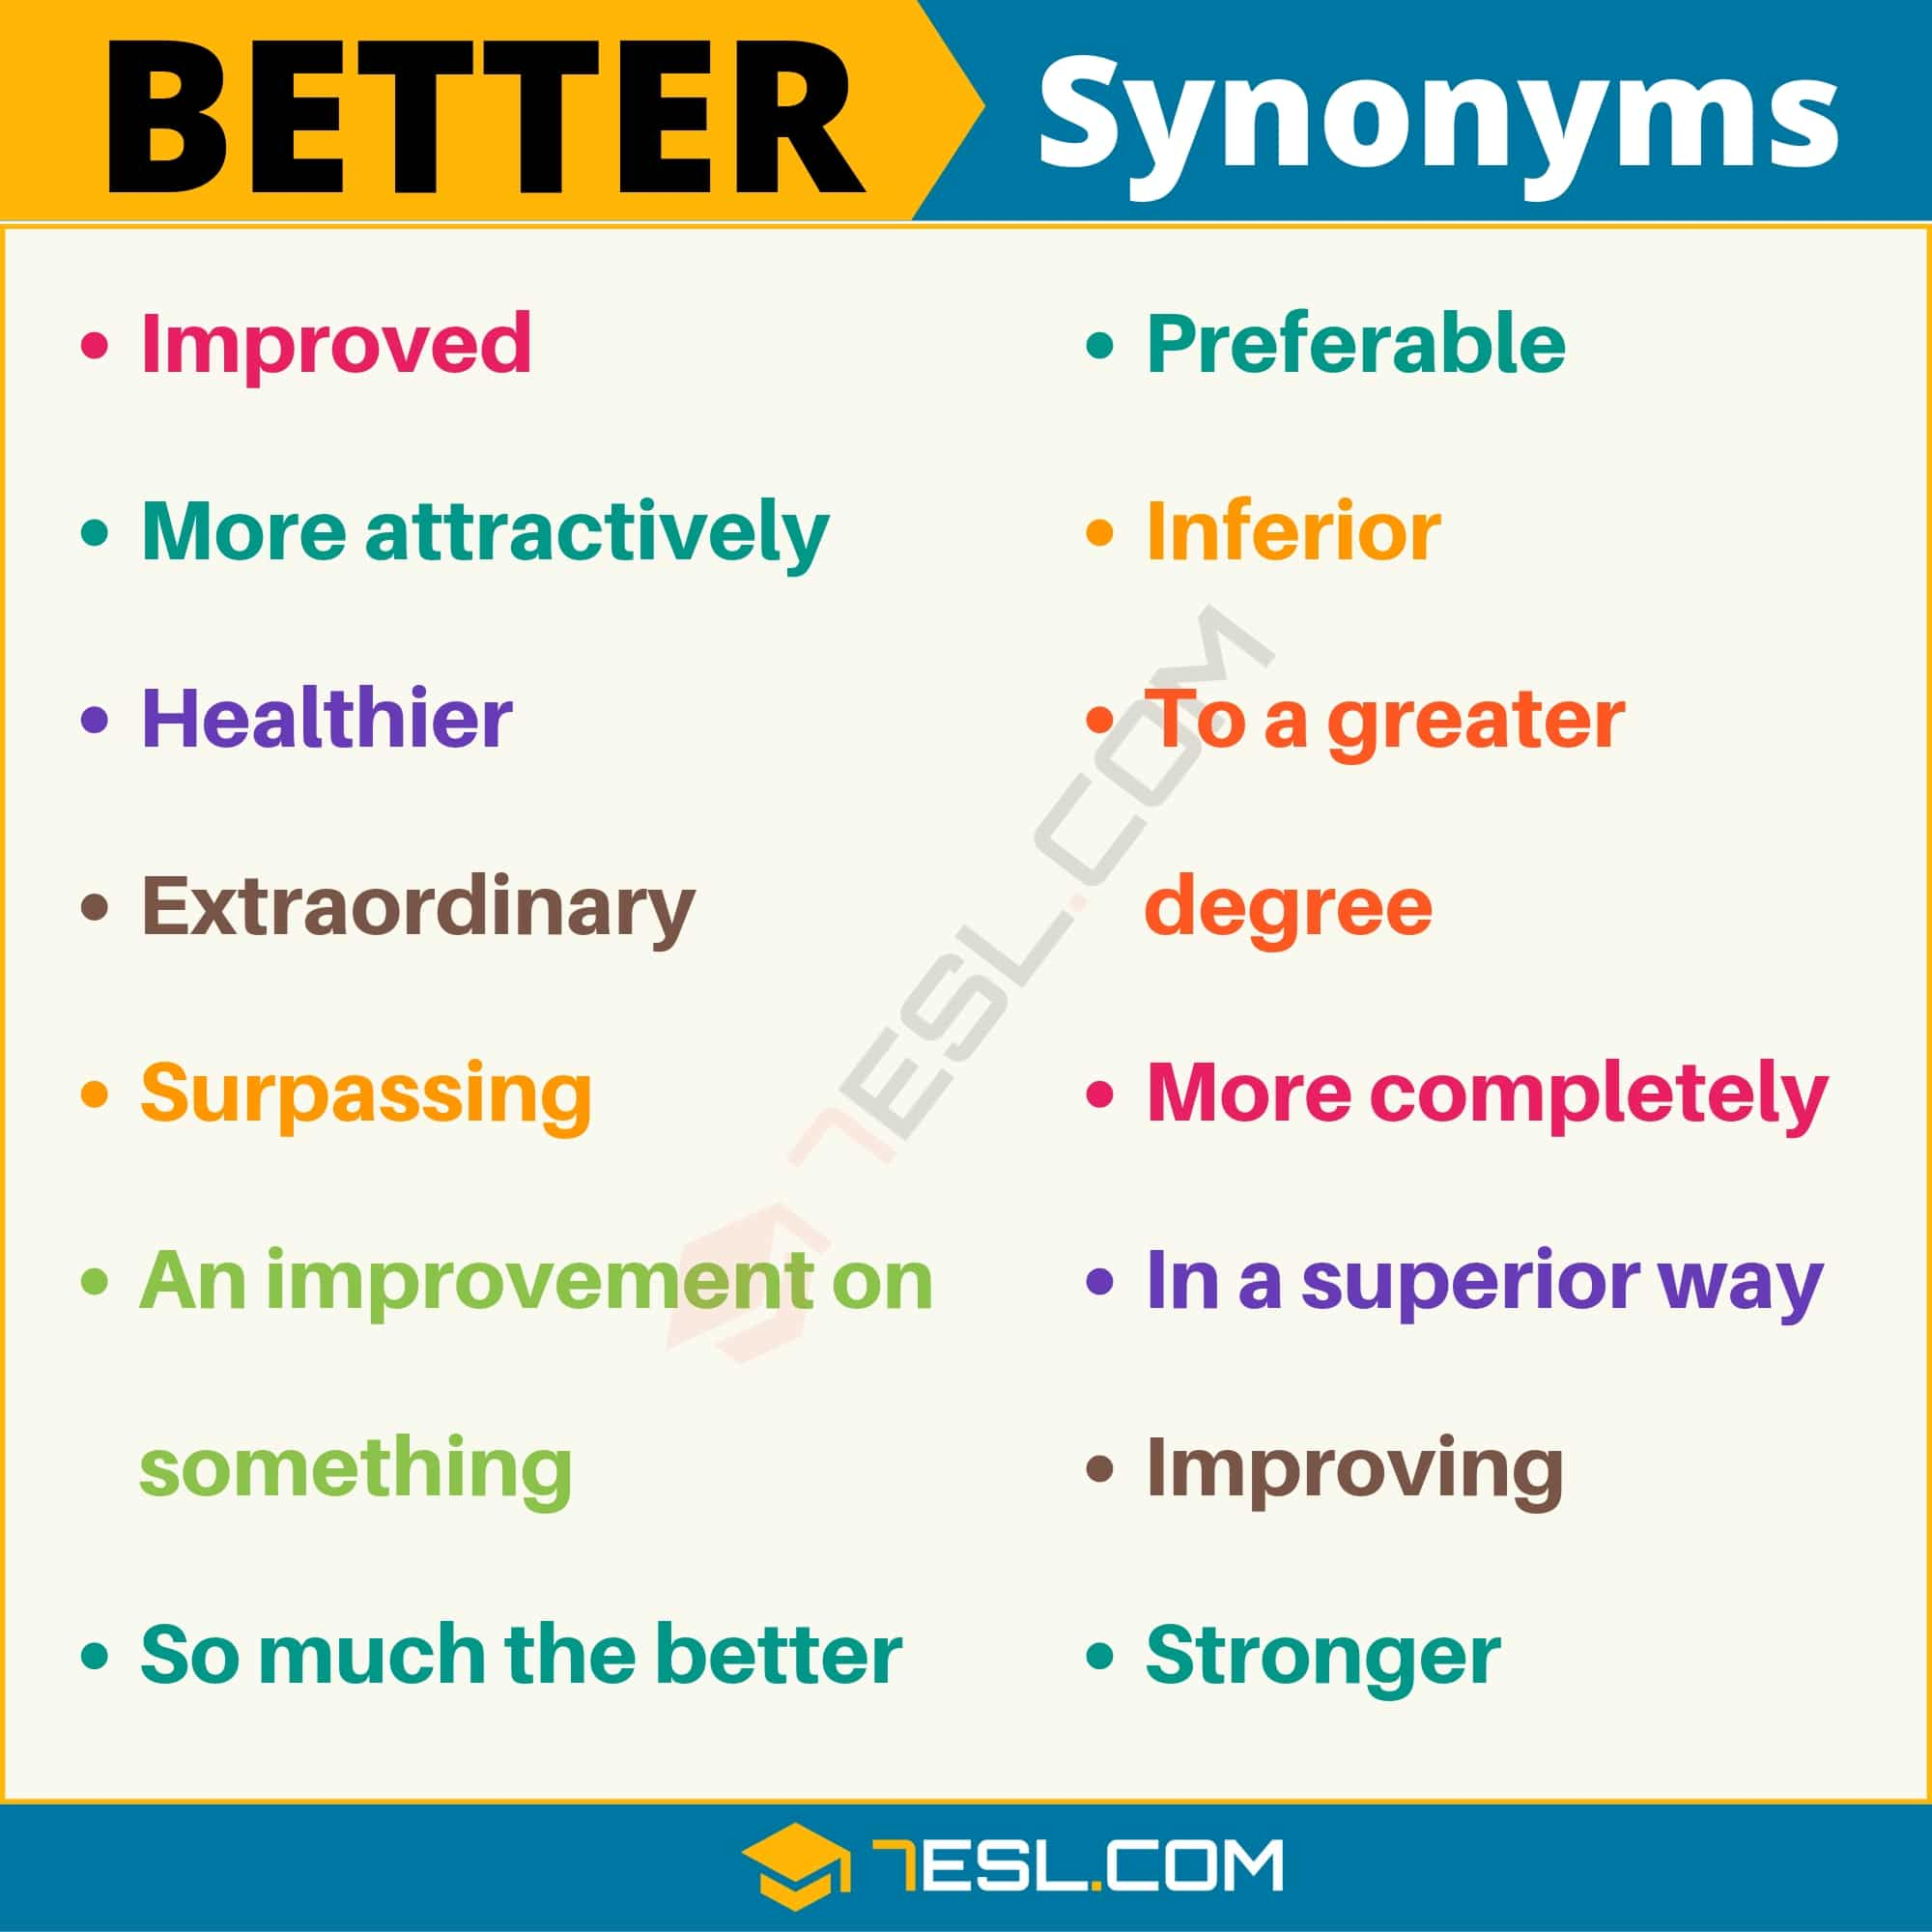 BETTER Synonym: List of 14 Synonyms for Better in English